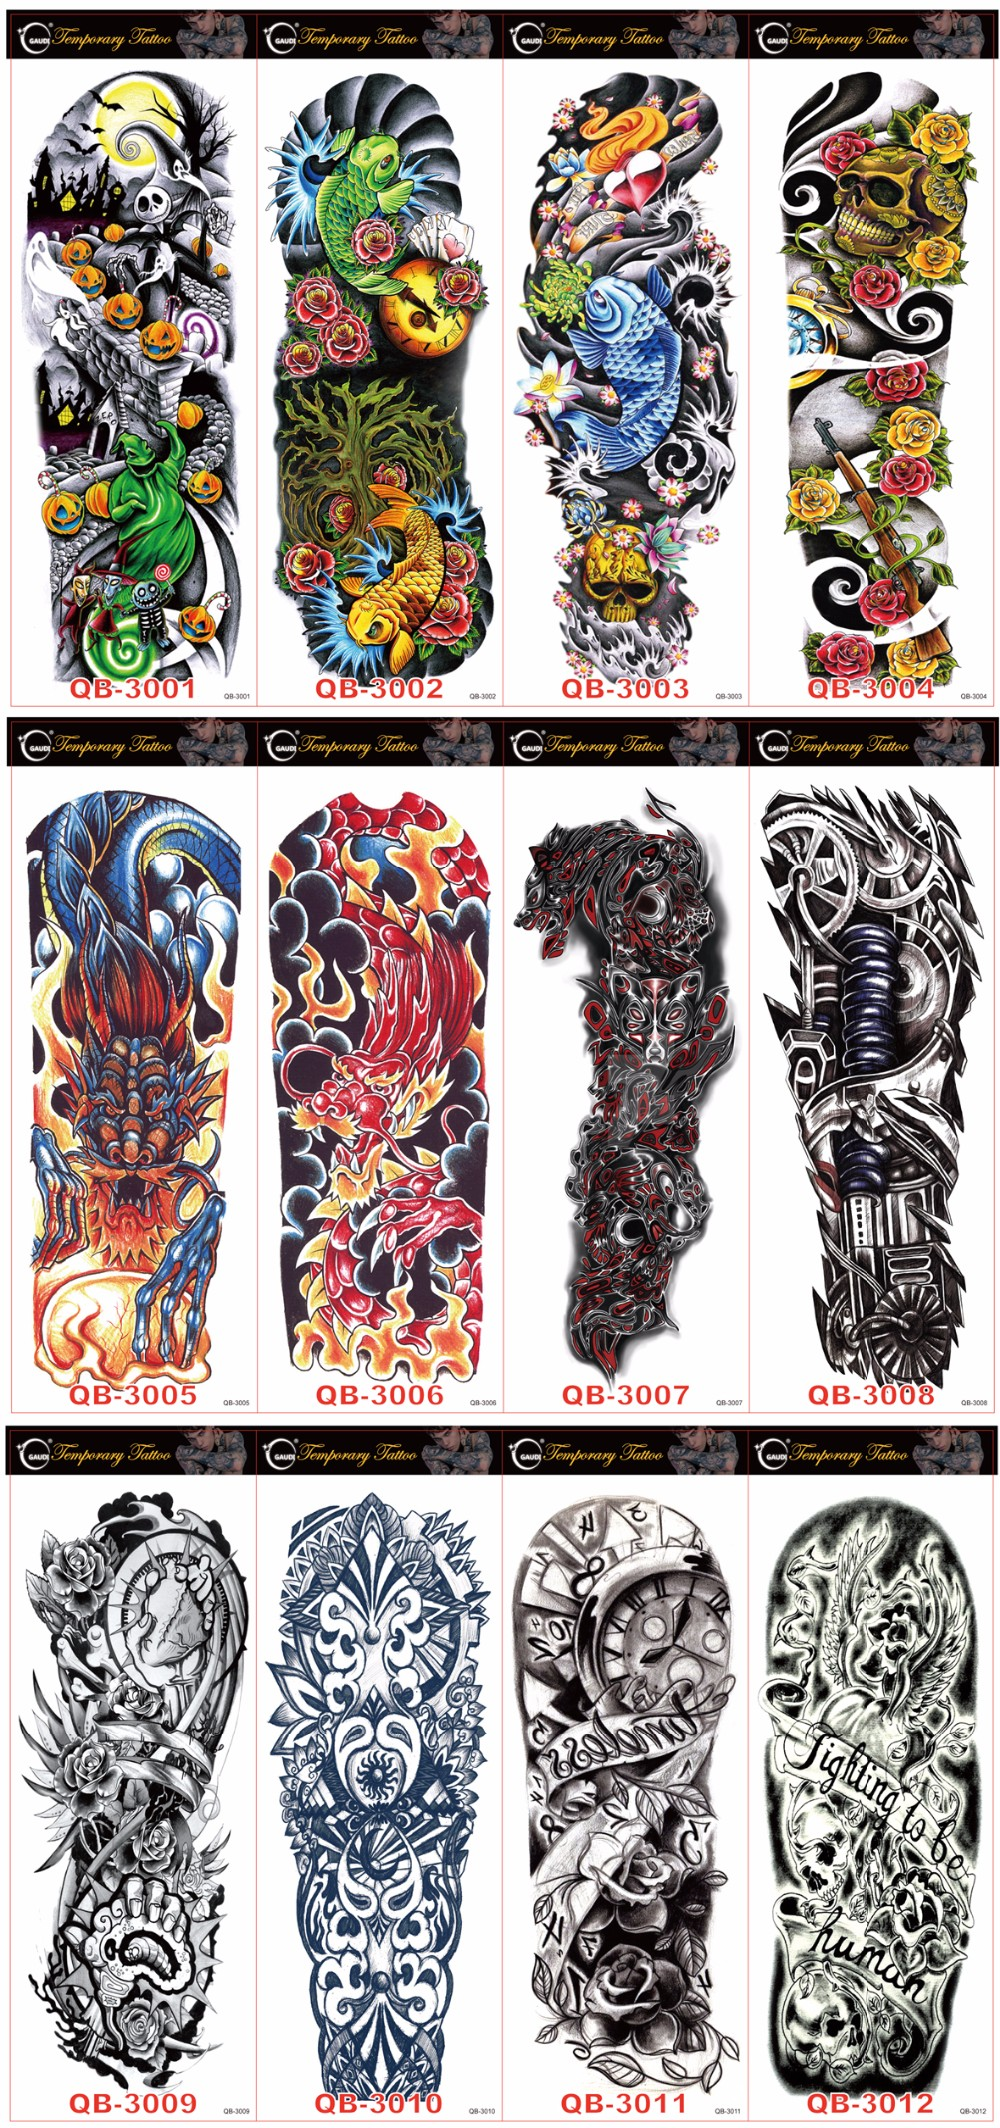 Waterproof Temporary Tattoo Sticker full arm large size robot arm tatto flash tatoo fake tattoos sleeve for men women 19 3